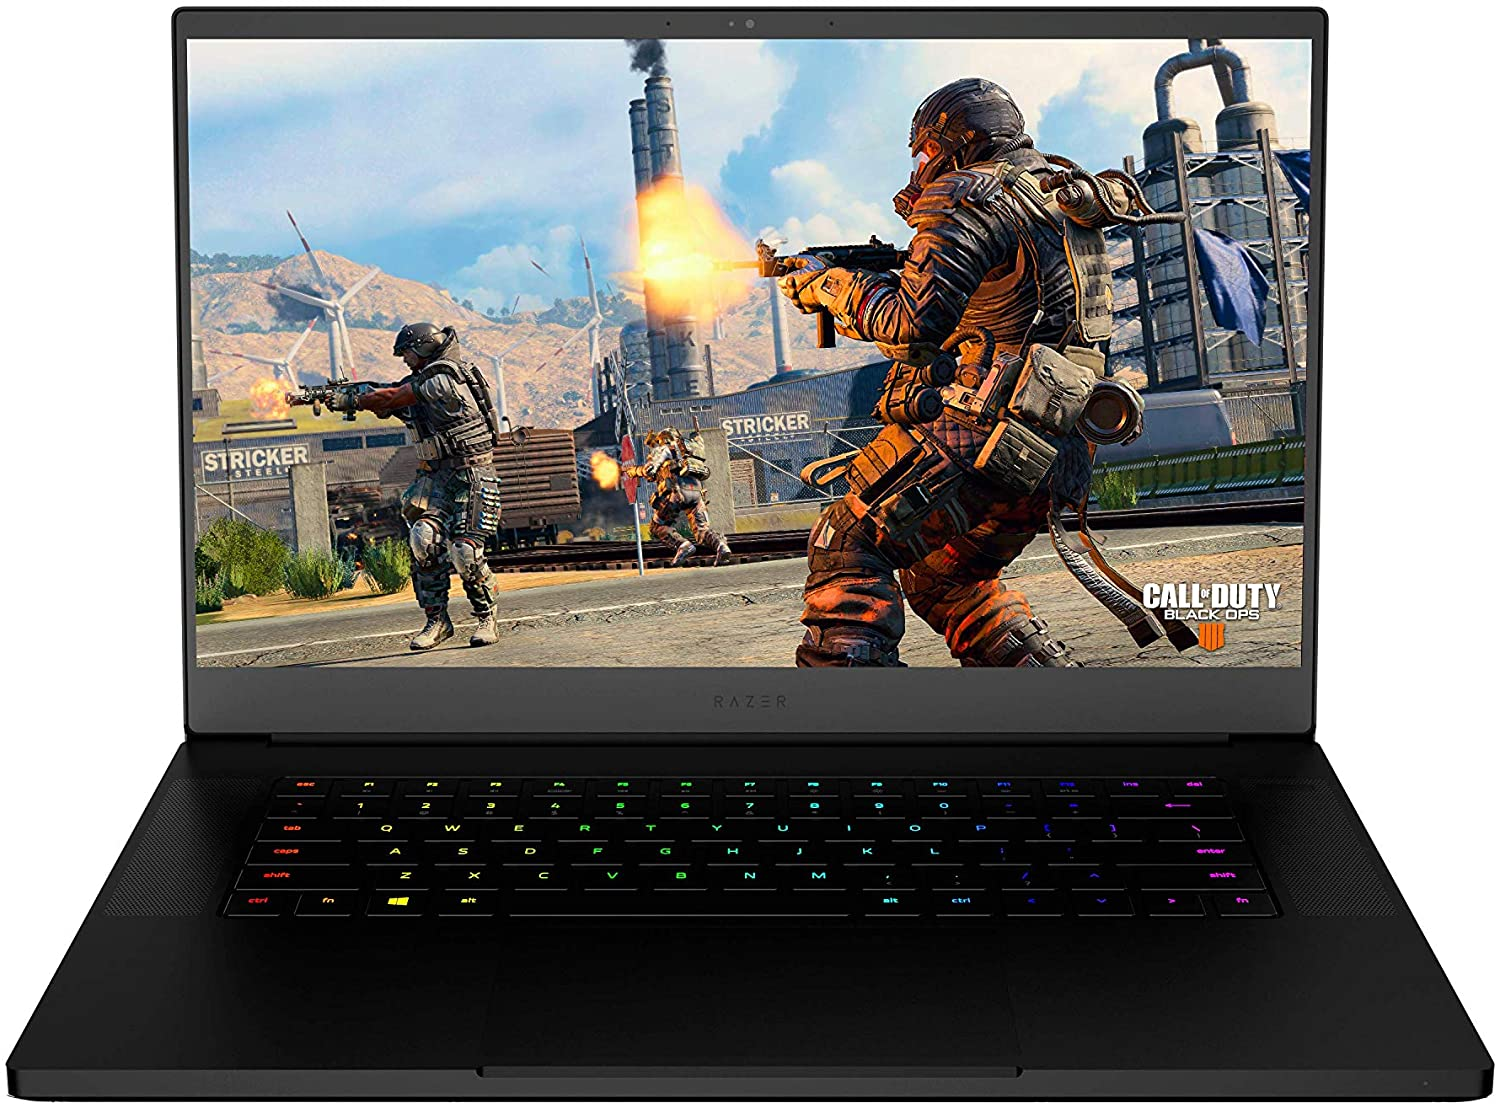 Amazon Com Razer Blade 15 World S Smallest 15 6 Gaming Laptop 60hz Full Hd Thin Bezel 8th Gen Intel Core I7 8750h 6 Core Nvidia Geforce Gtx 1060 Max Q 16gb Ram